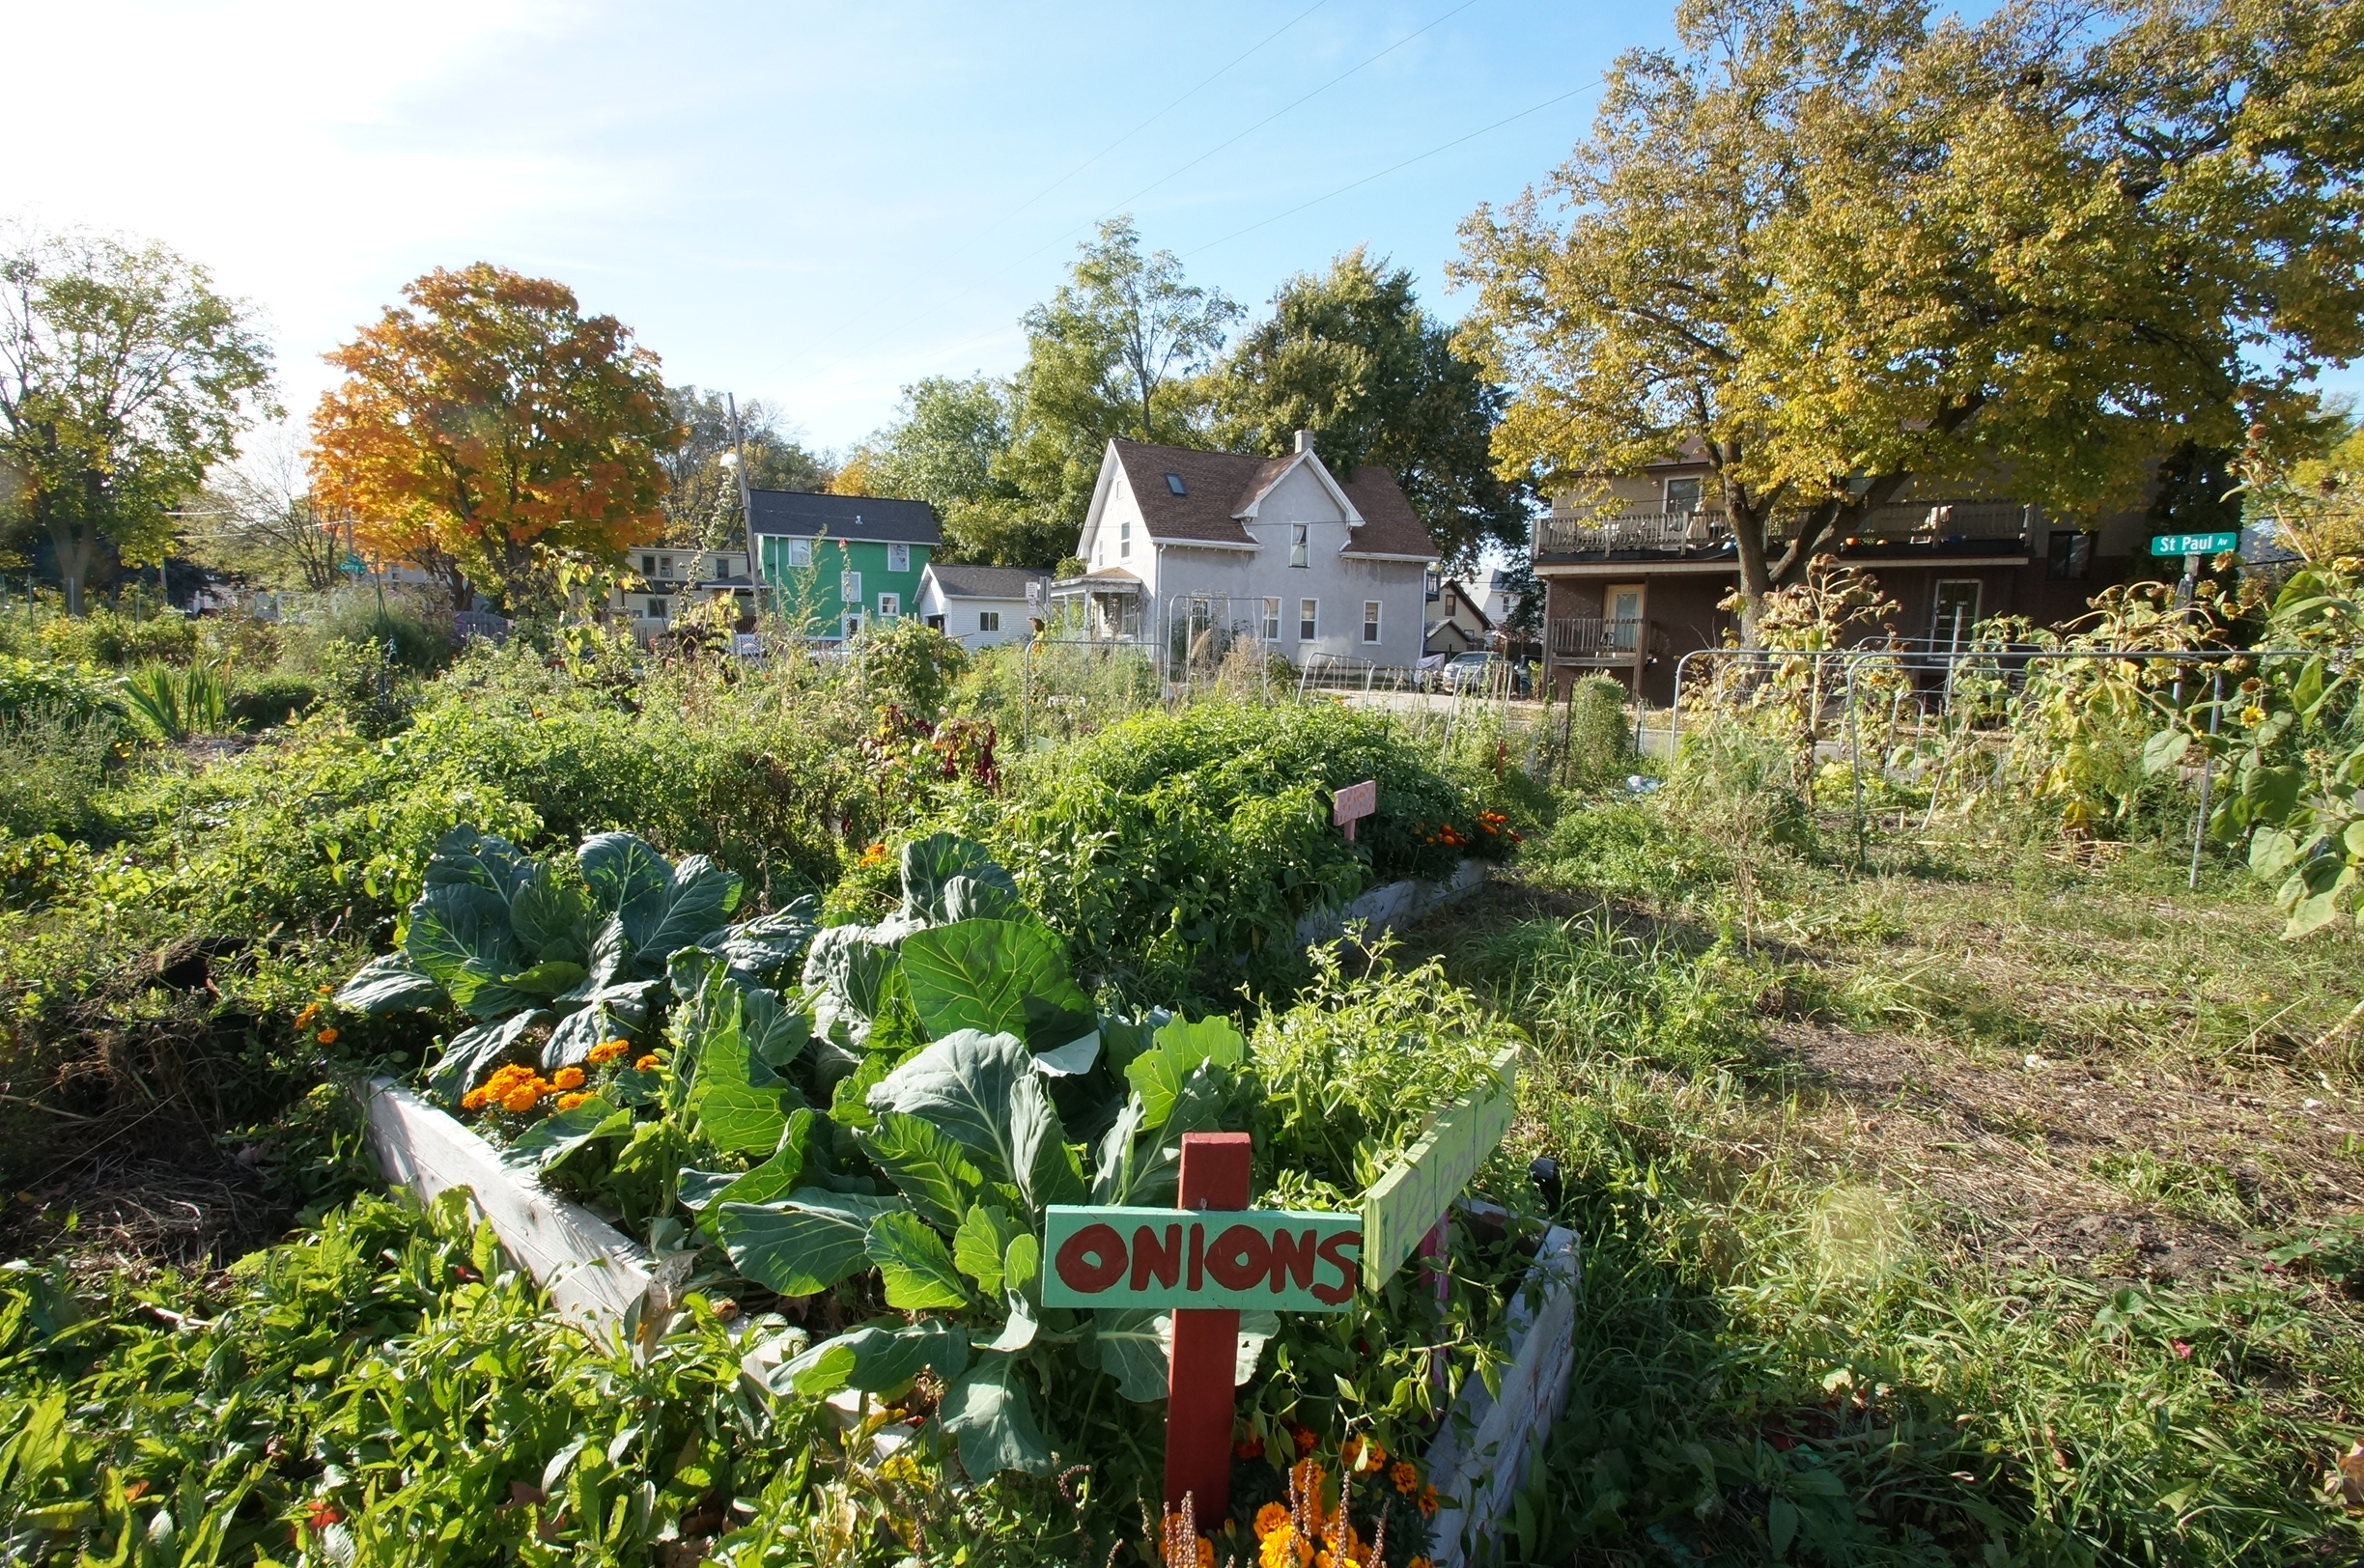 schenk atwood community gardens photo